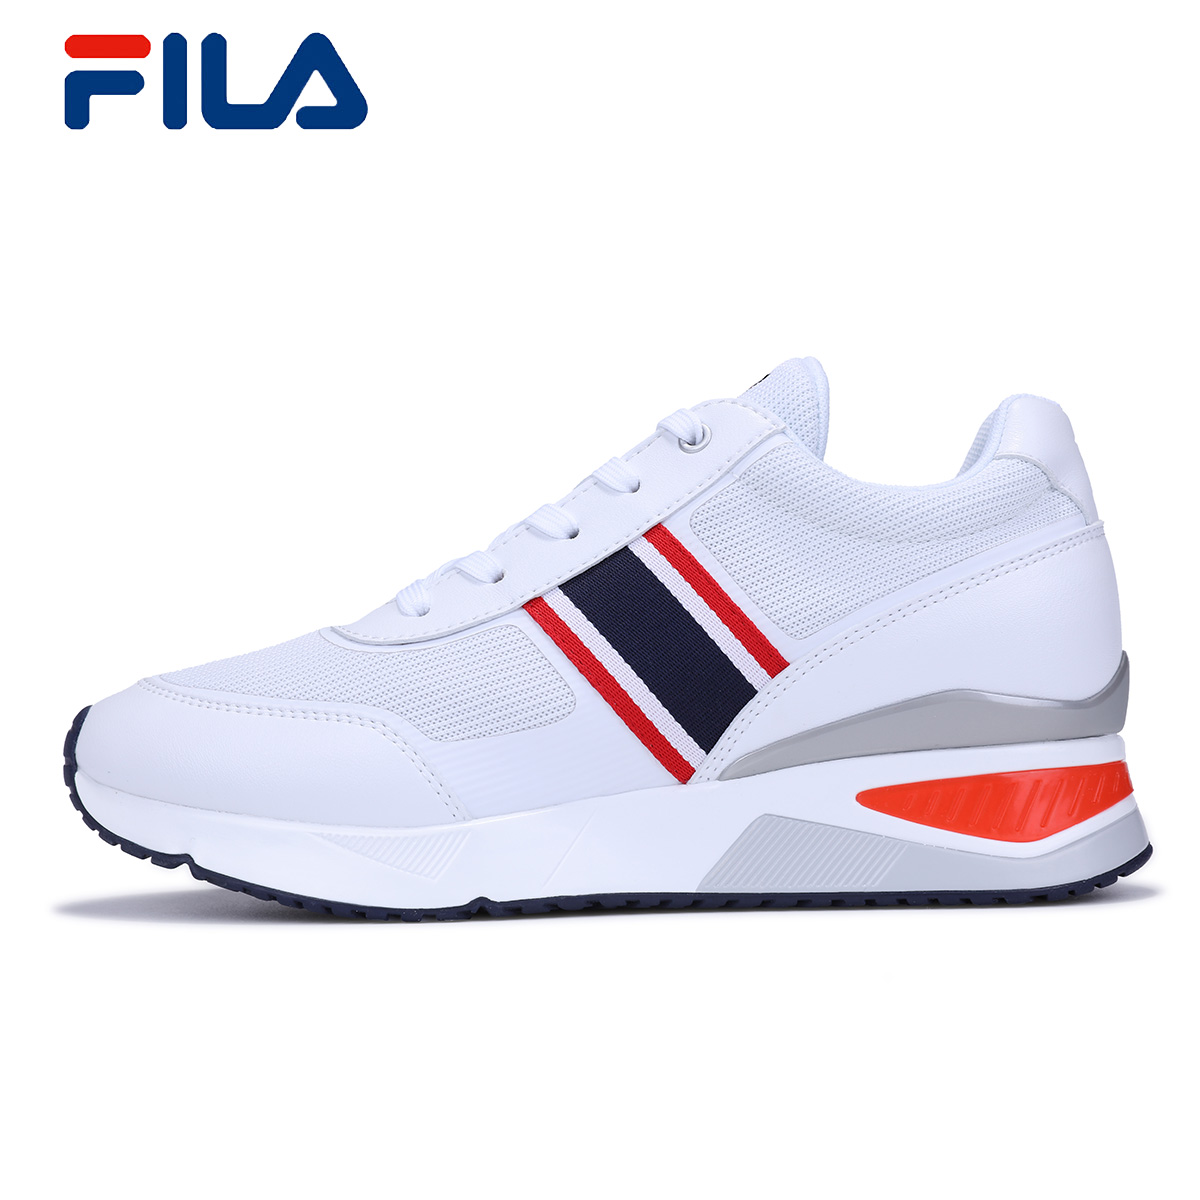 fila for women. lightbox moreview · fila for women s